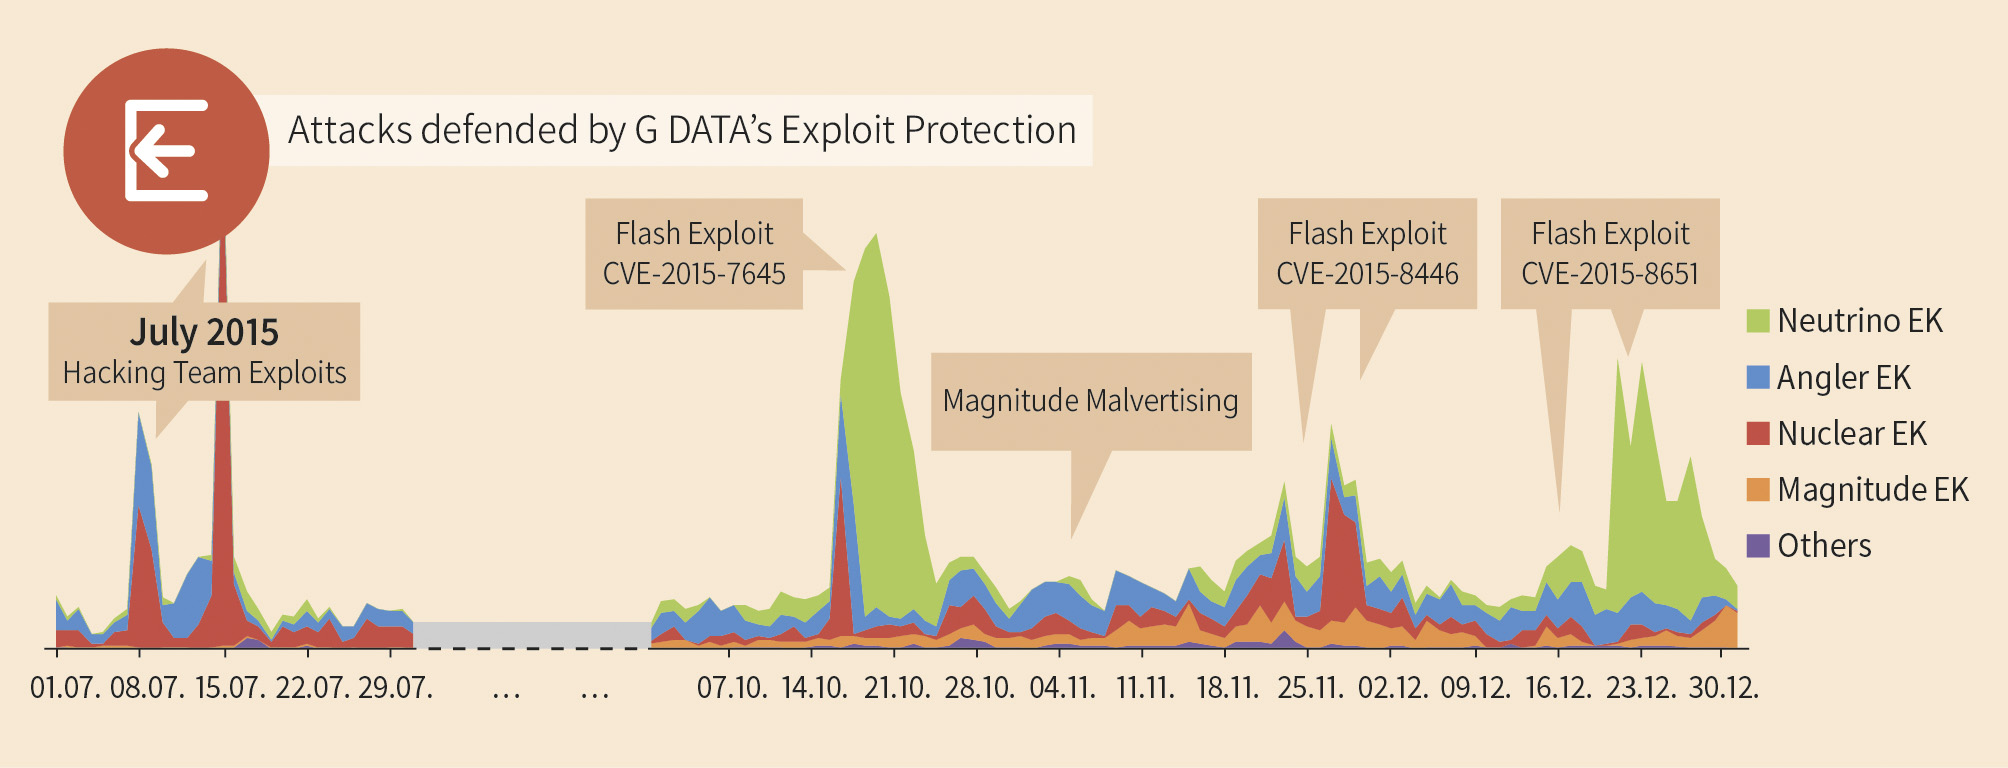 gdata diagram exploit kit detections h2 2015 v1 en rgb